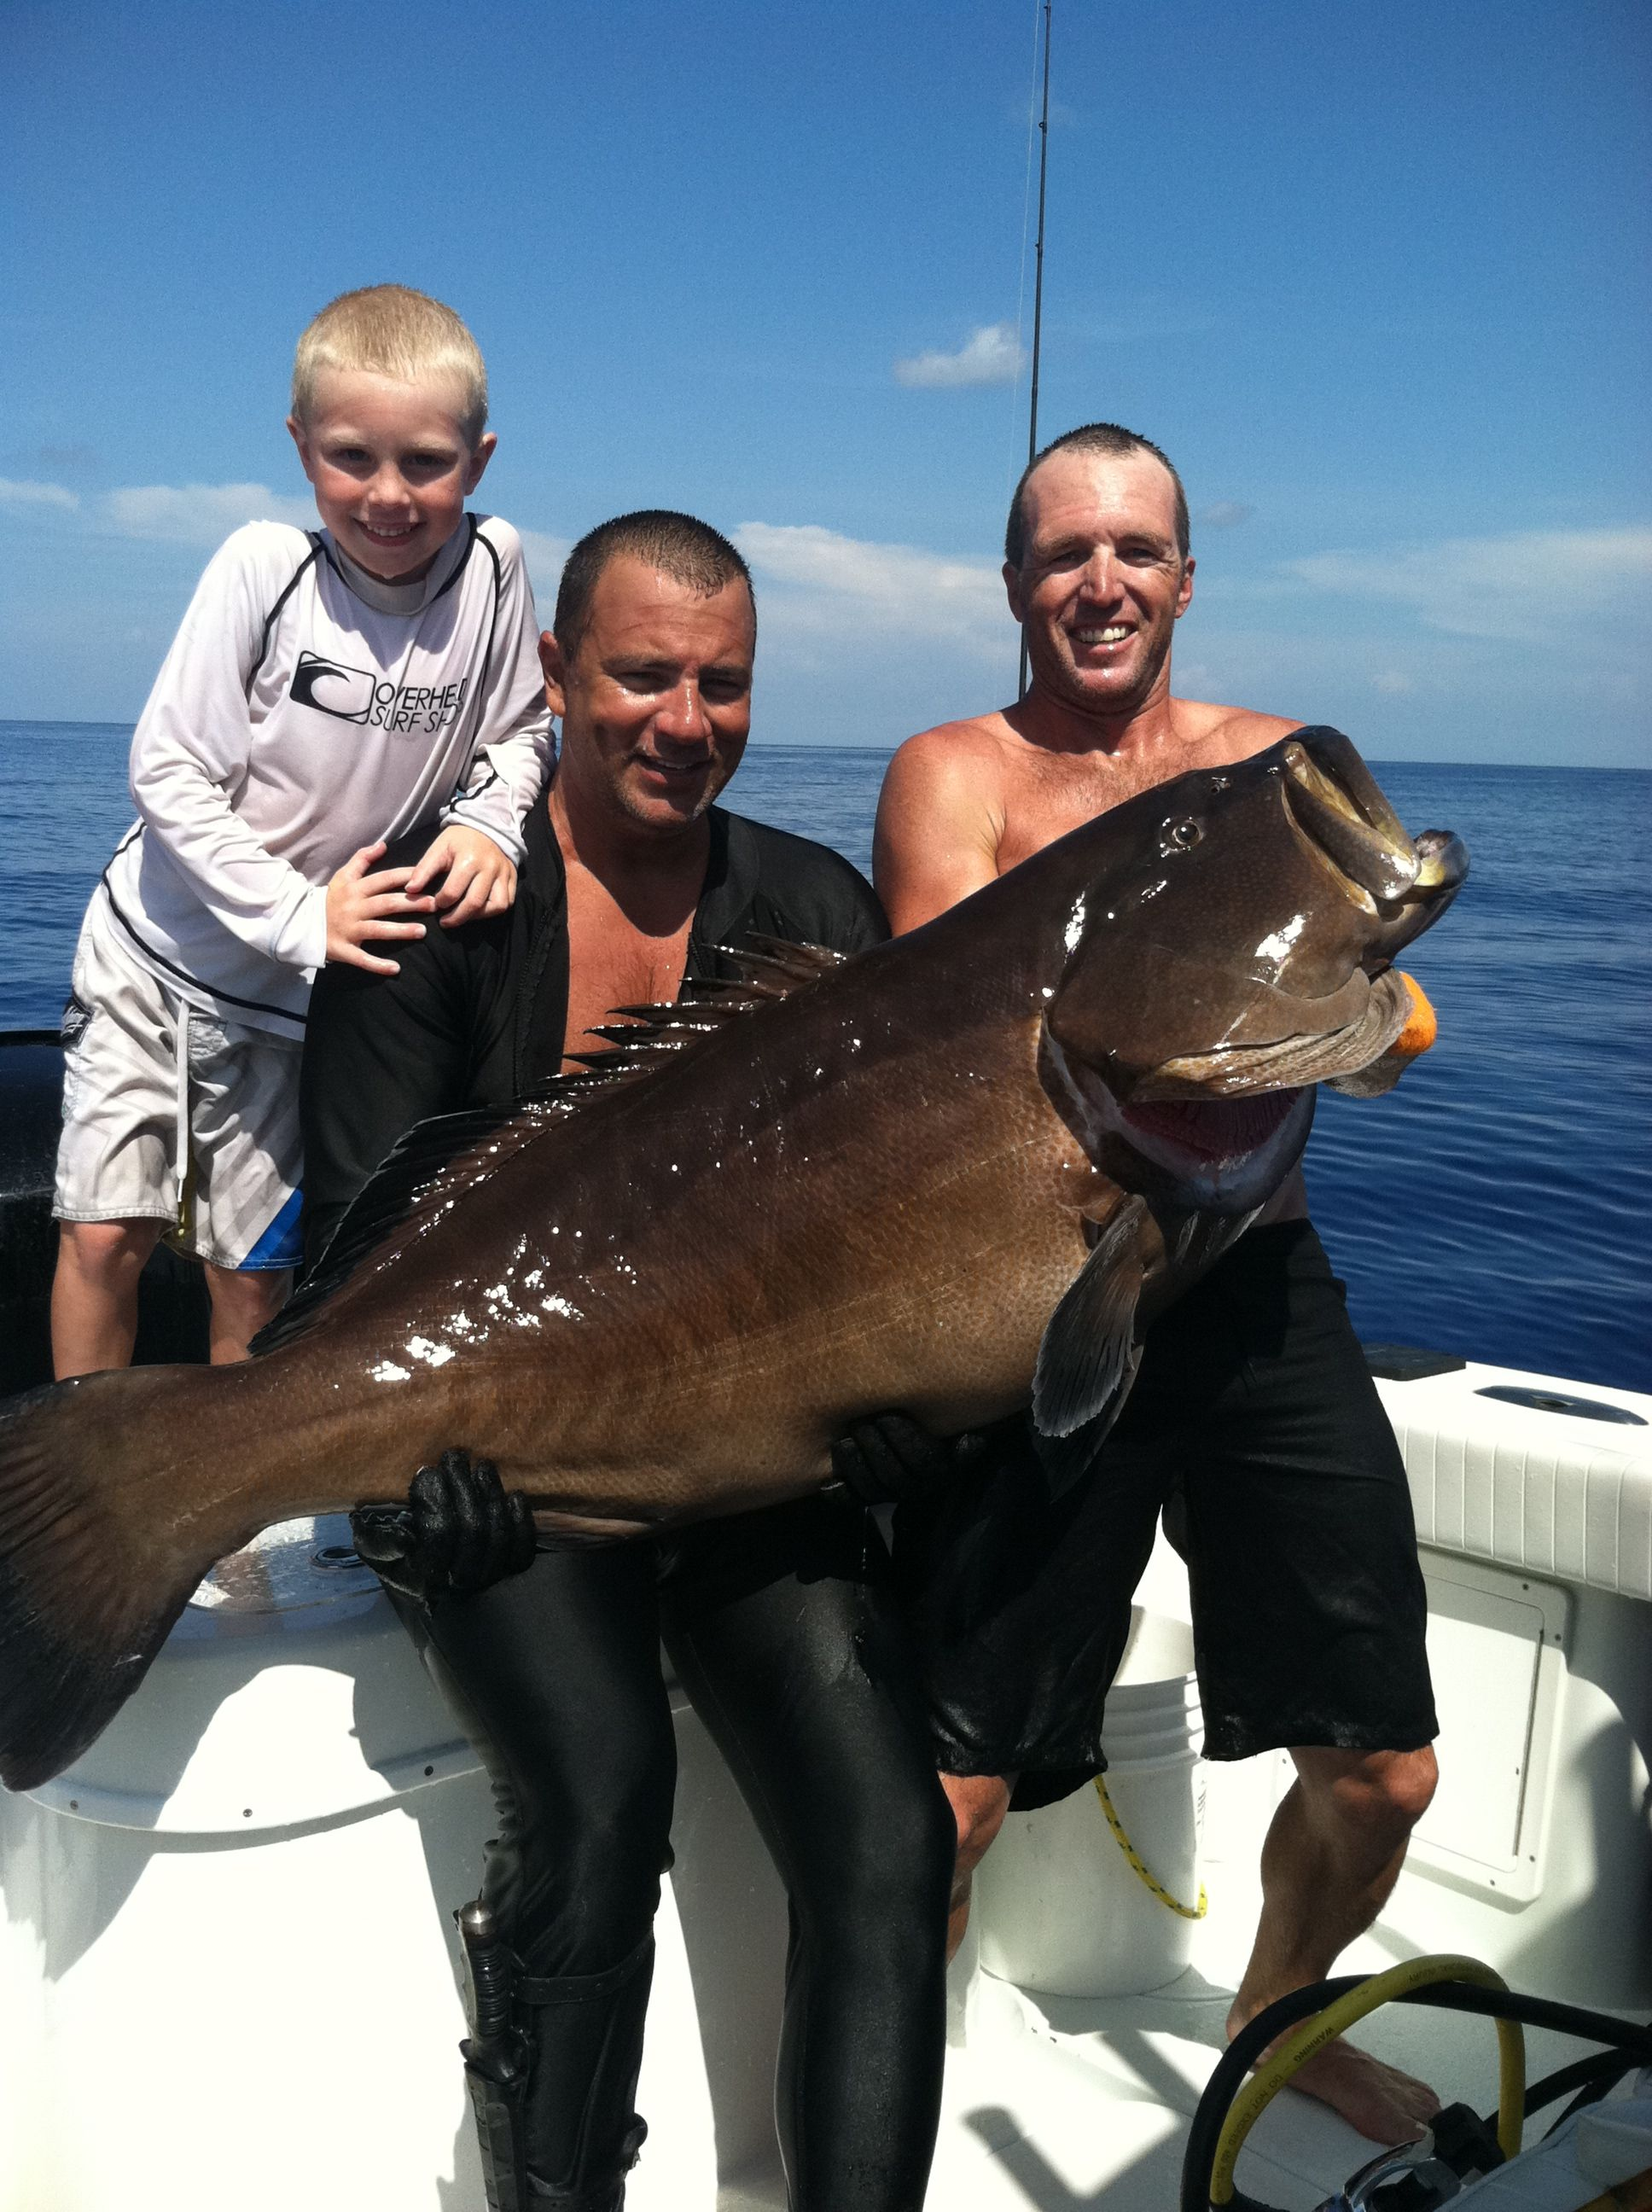 Imagine Catching A Giant Black Bigger Than Your Son! That